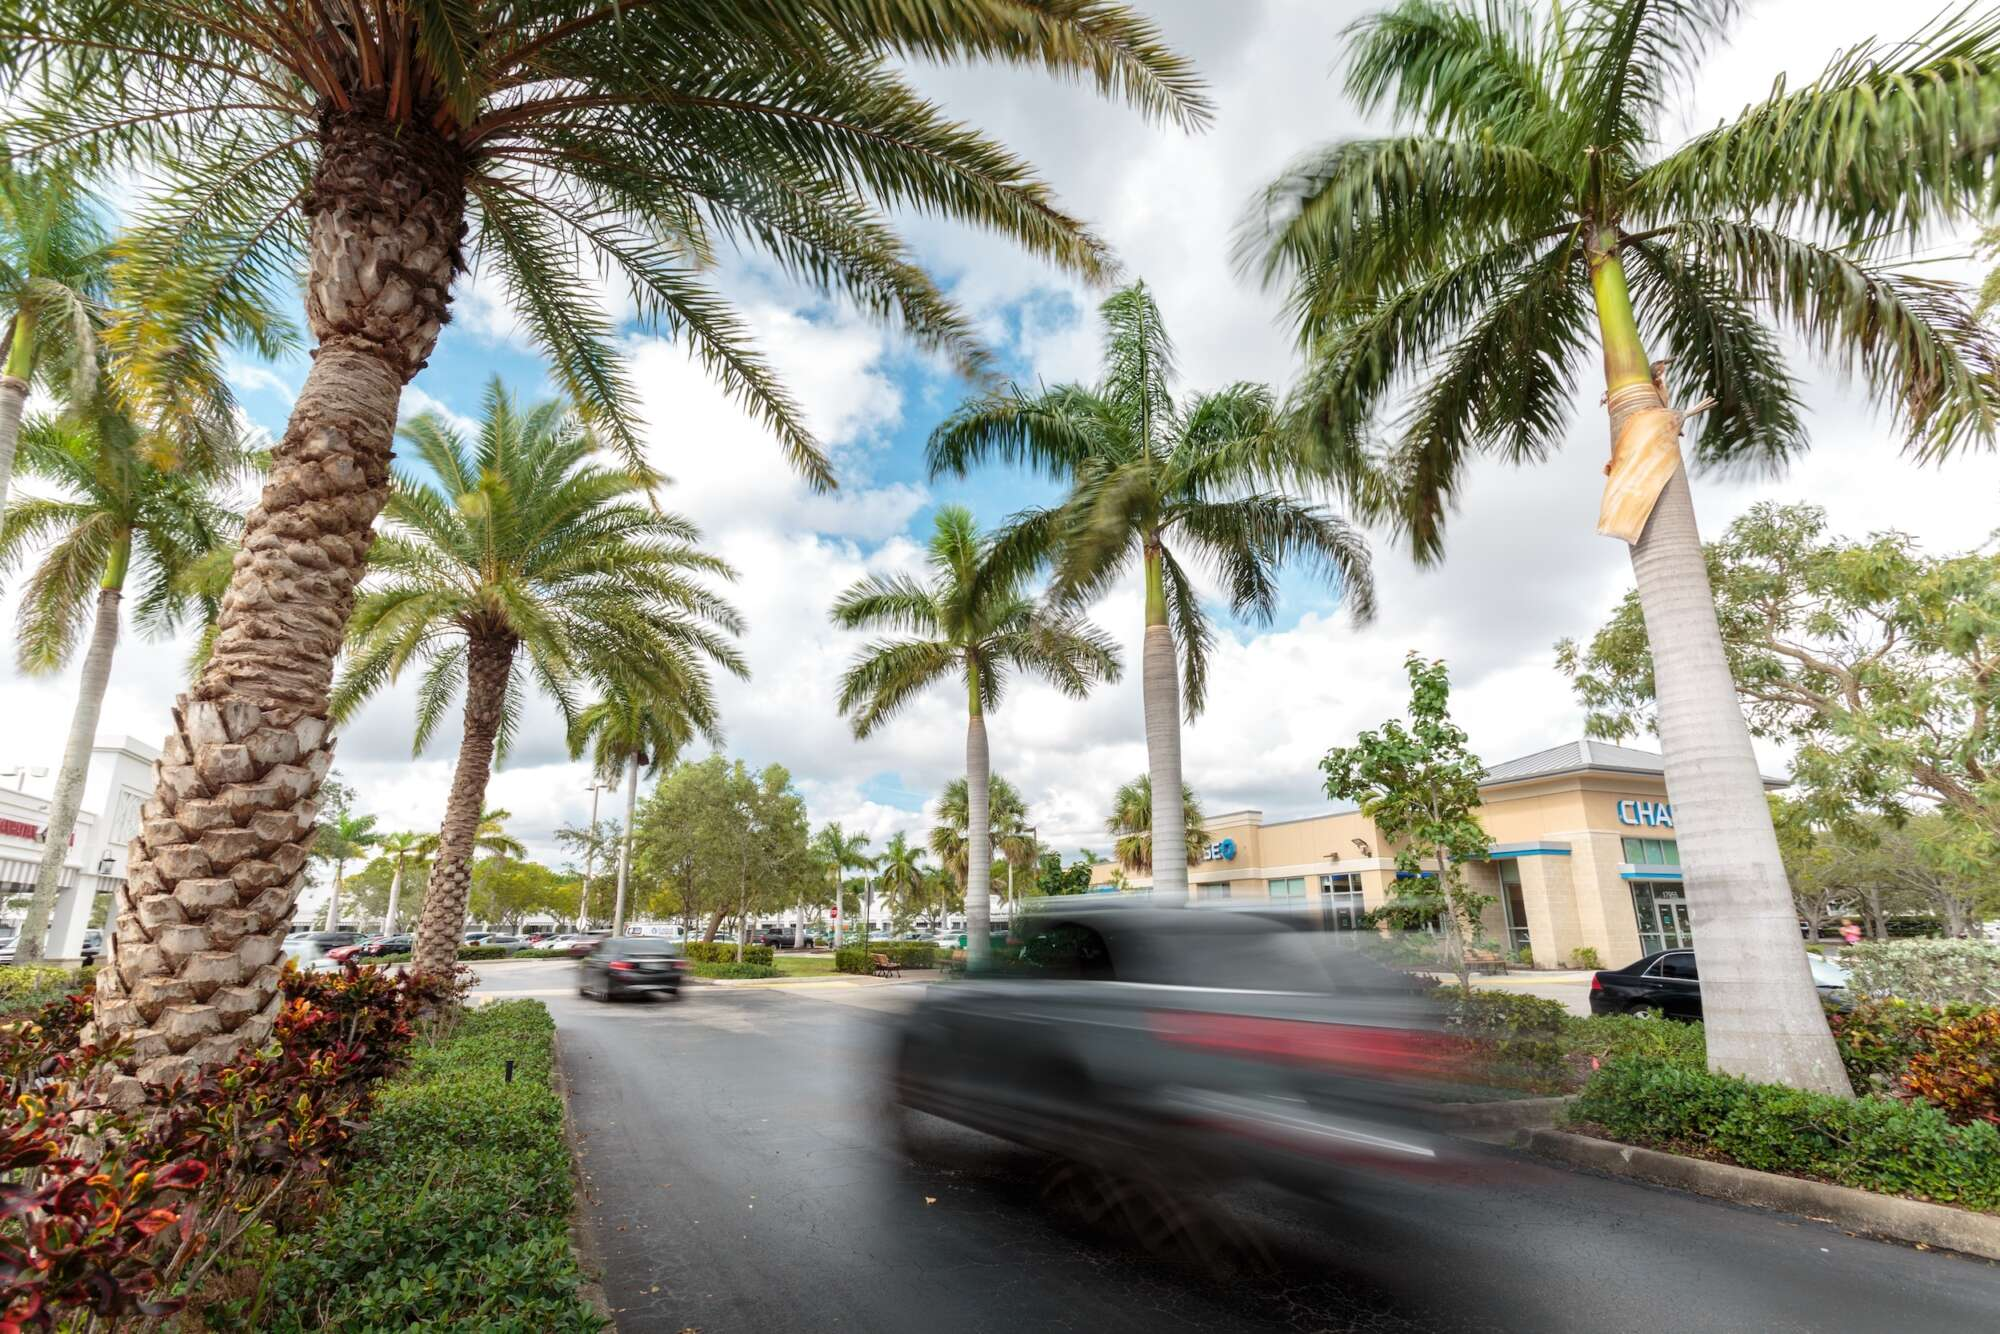 Cars enter Polo Club Shops with palm trees on both sides.